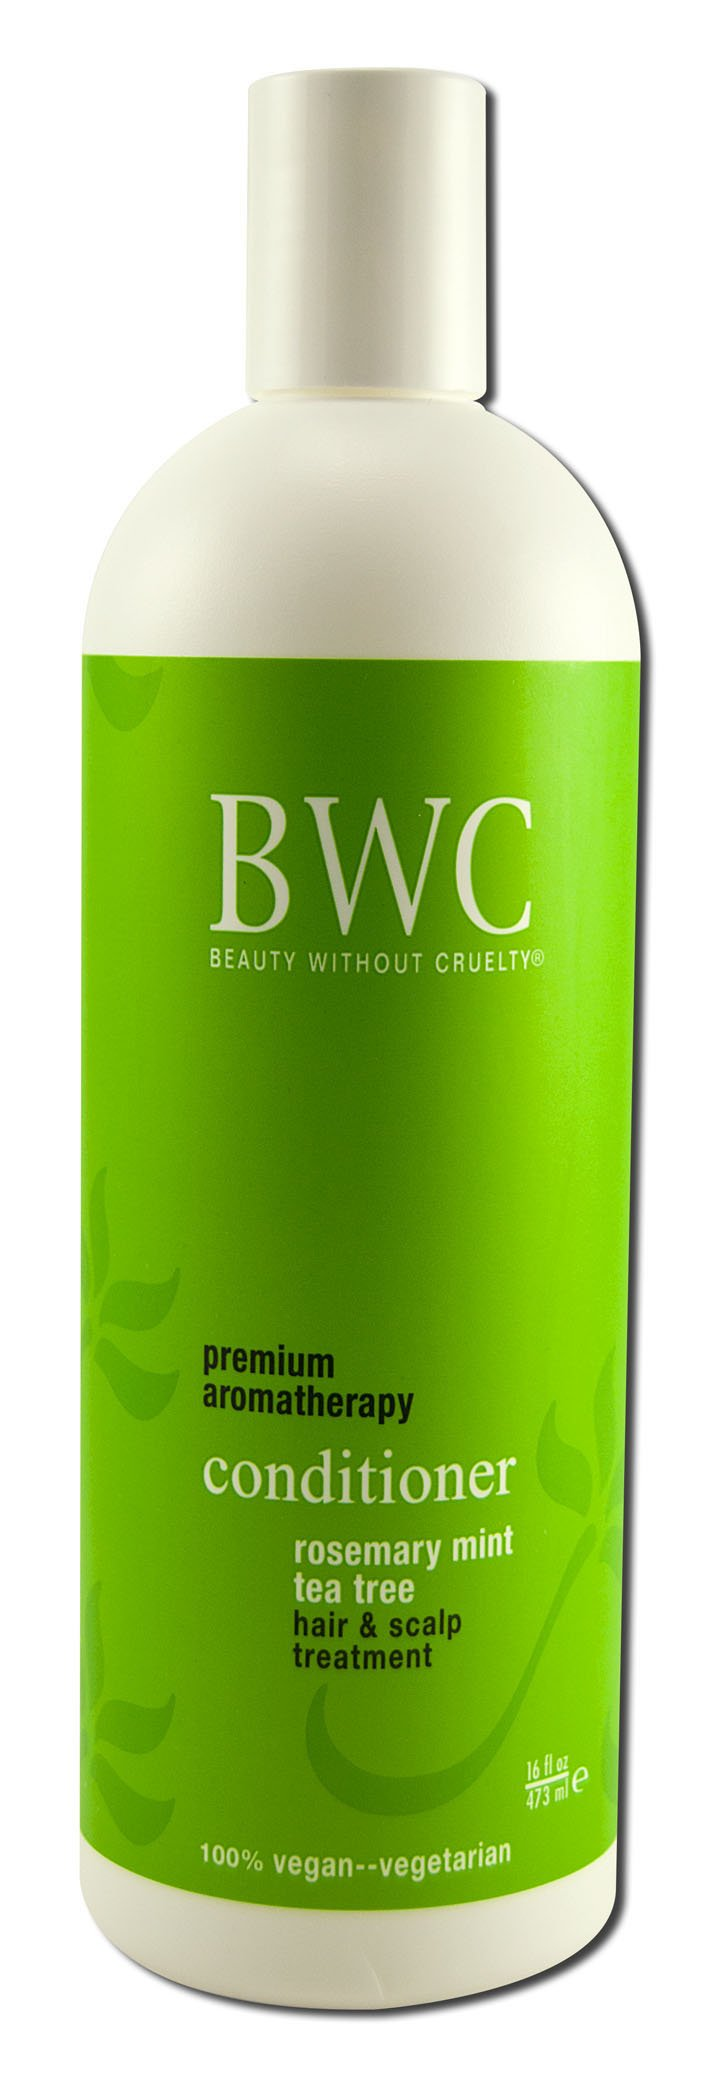 Beauty without Cruelty Conditioner, Rosemary Mint Tea Tree, 16-ounce